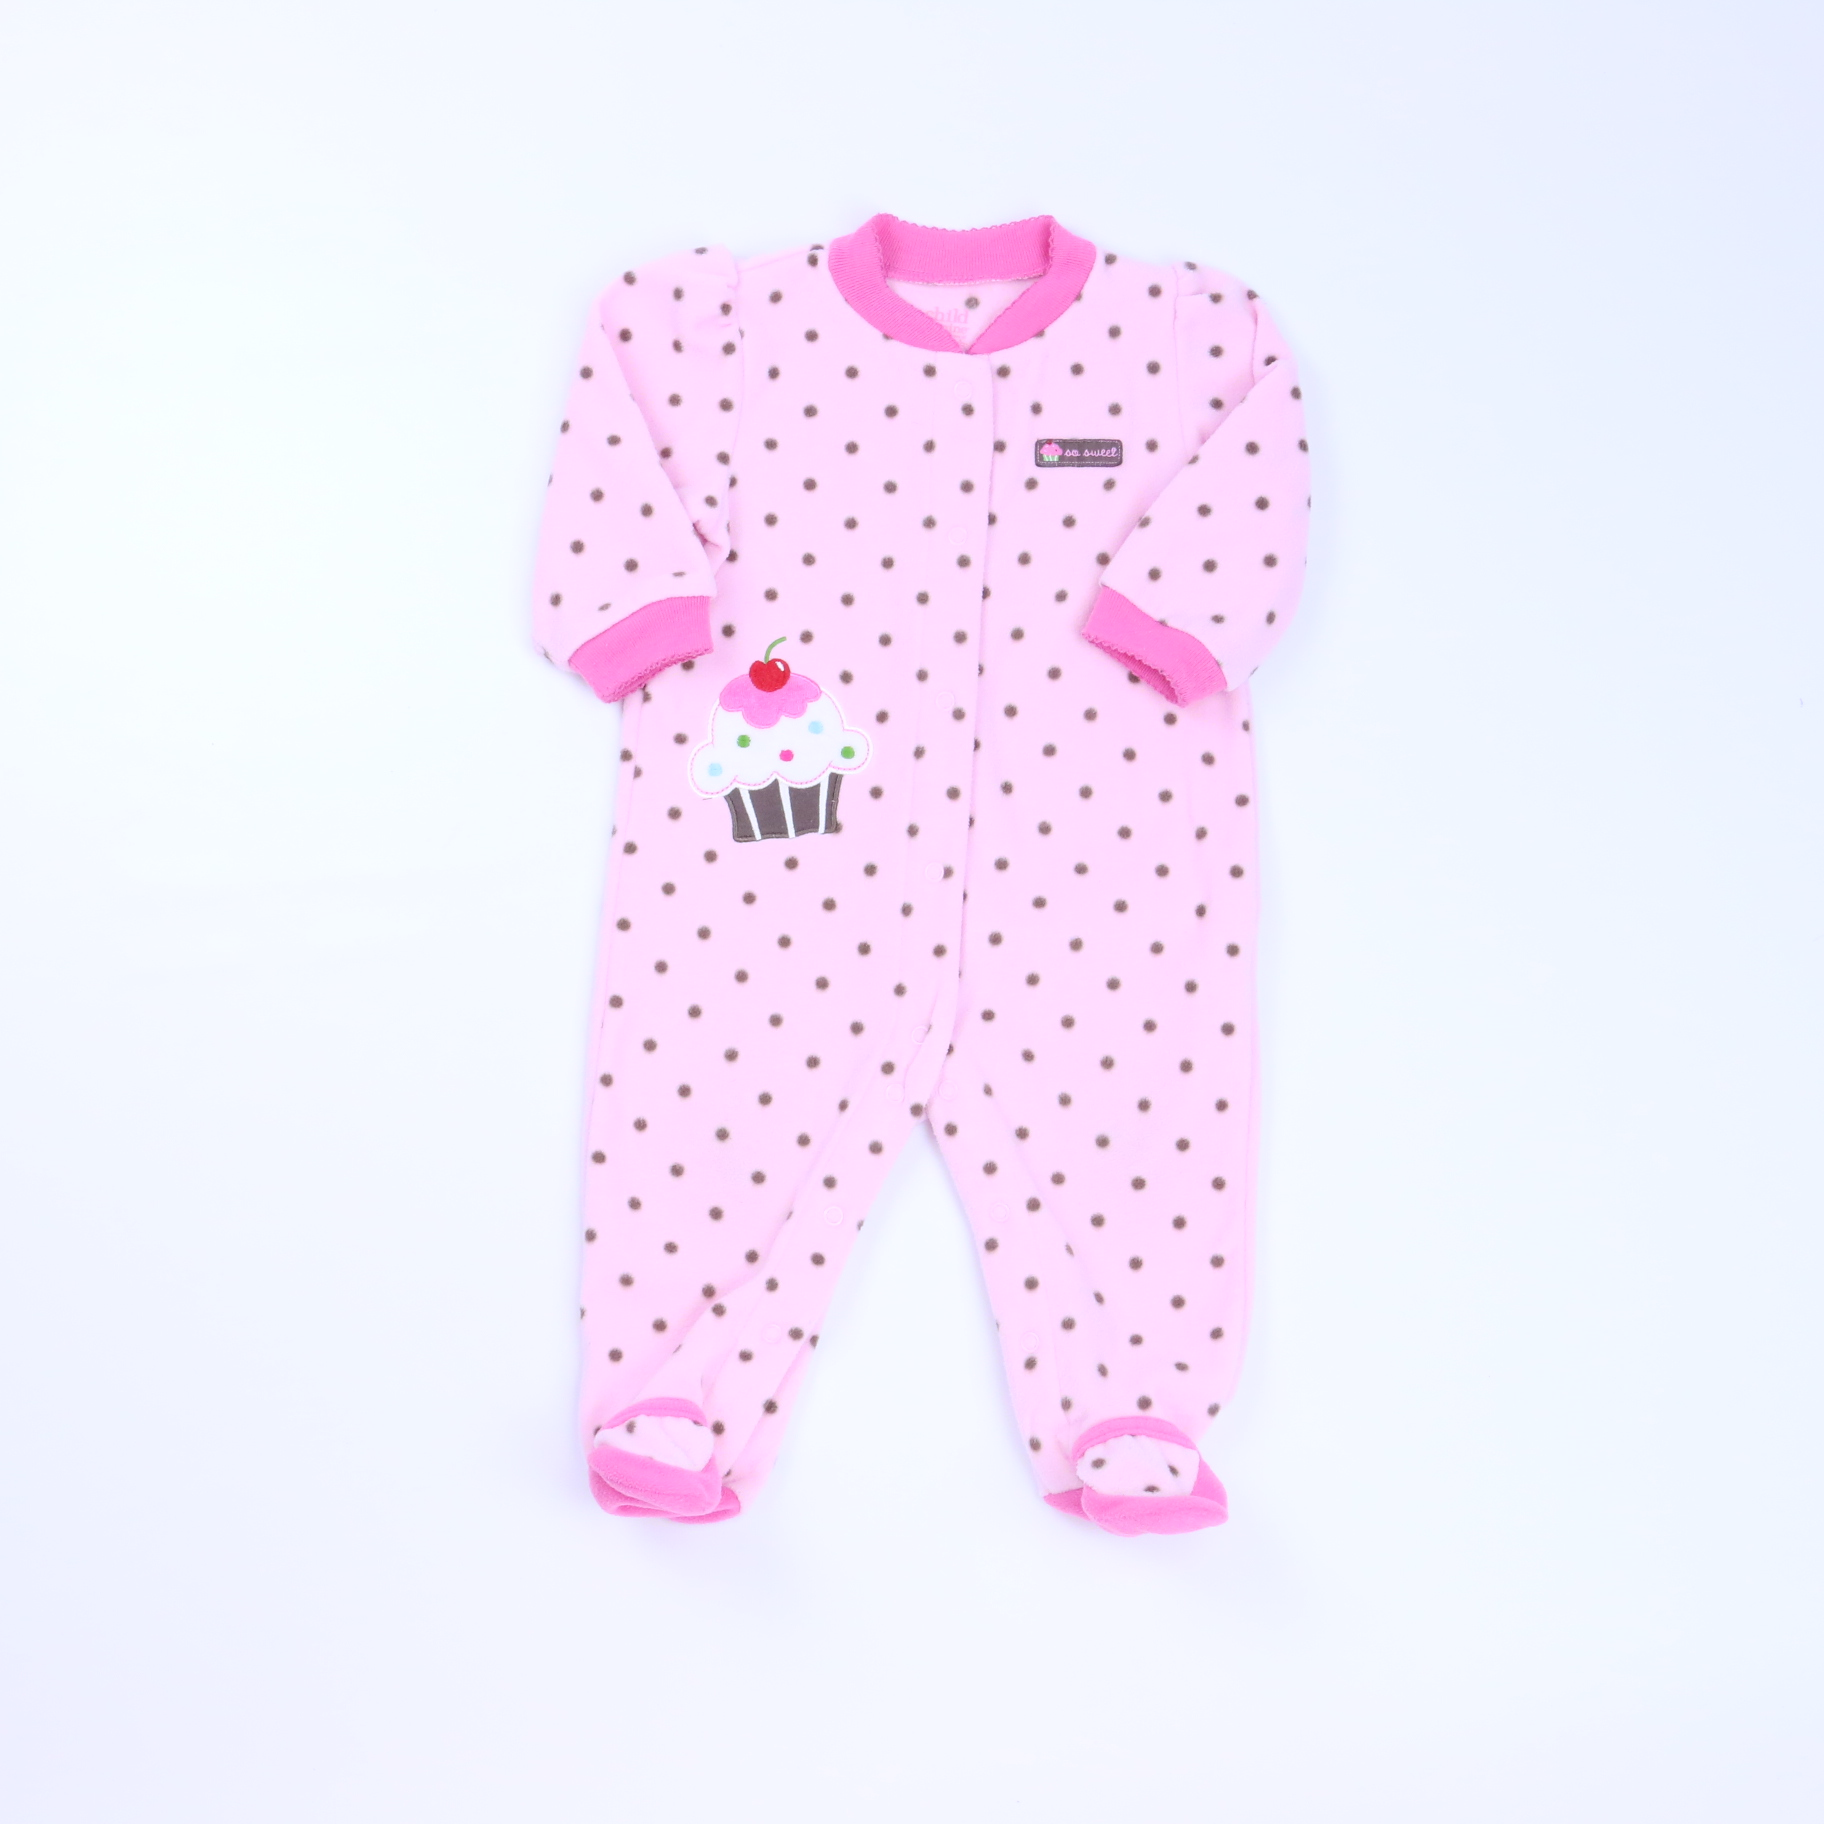 c815edc5e 1-piece footed Pajamas size  6-9 Months - The Swoondle Society